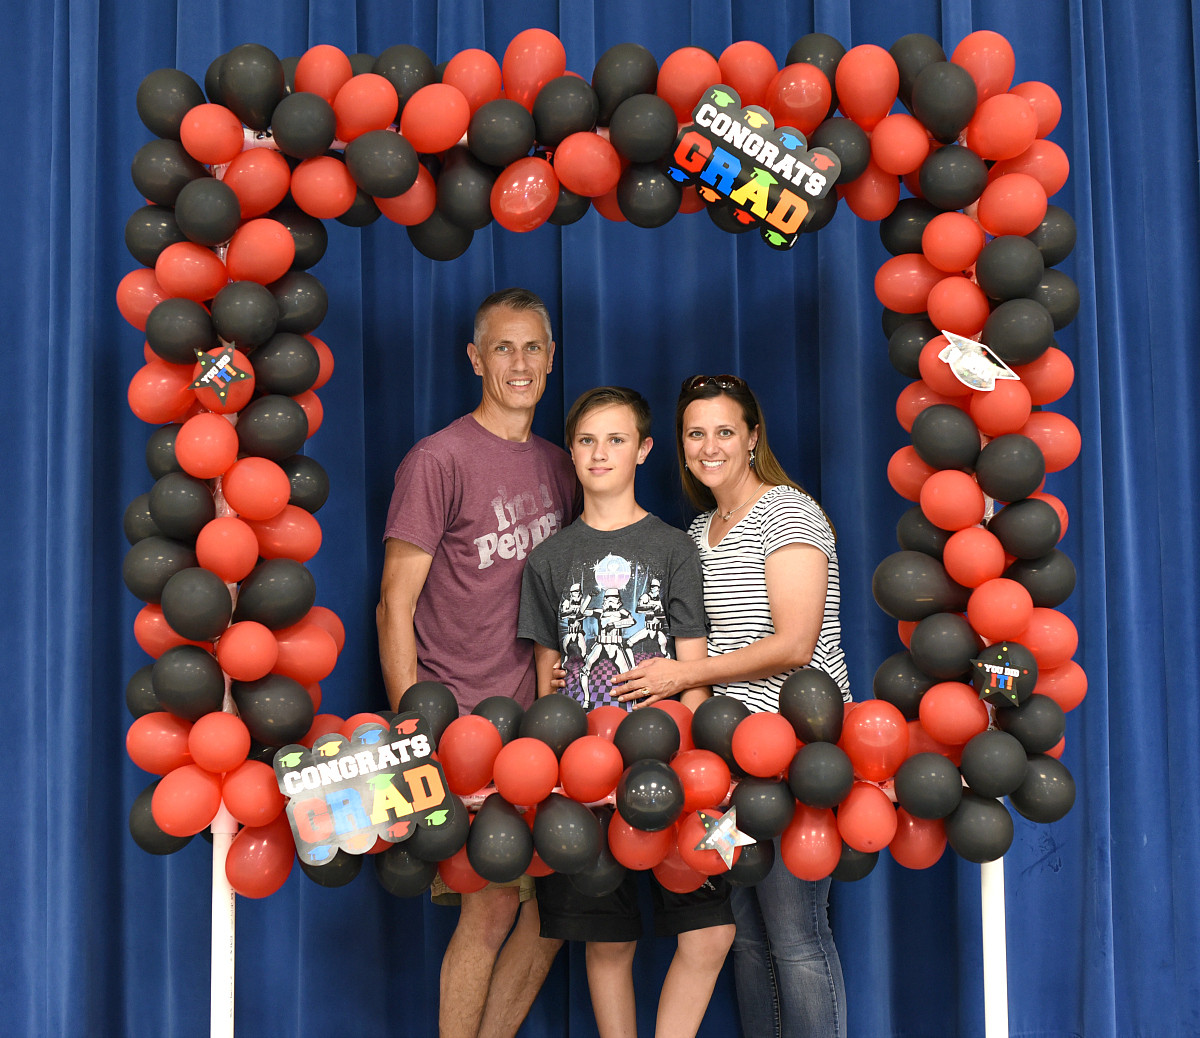 Photo Booth Ideas For Graduation Party  25 Fun Graduation Party Ideas – Fun Squared